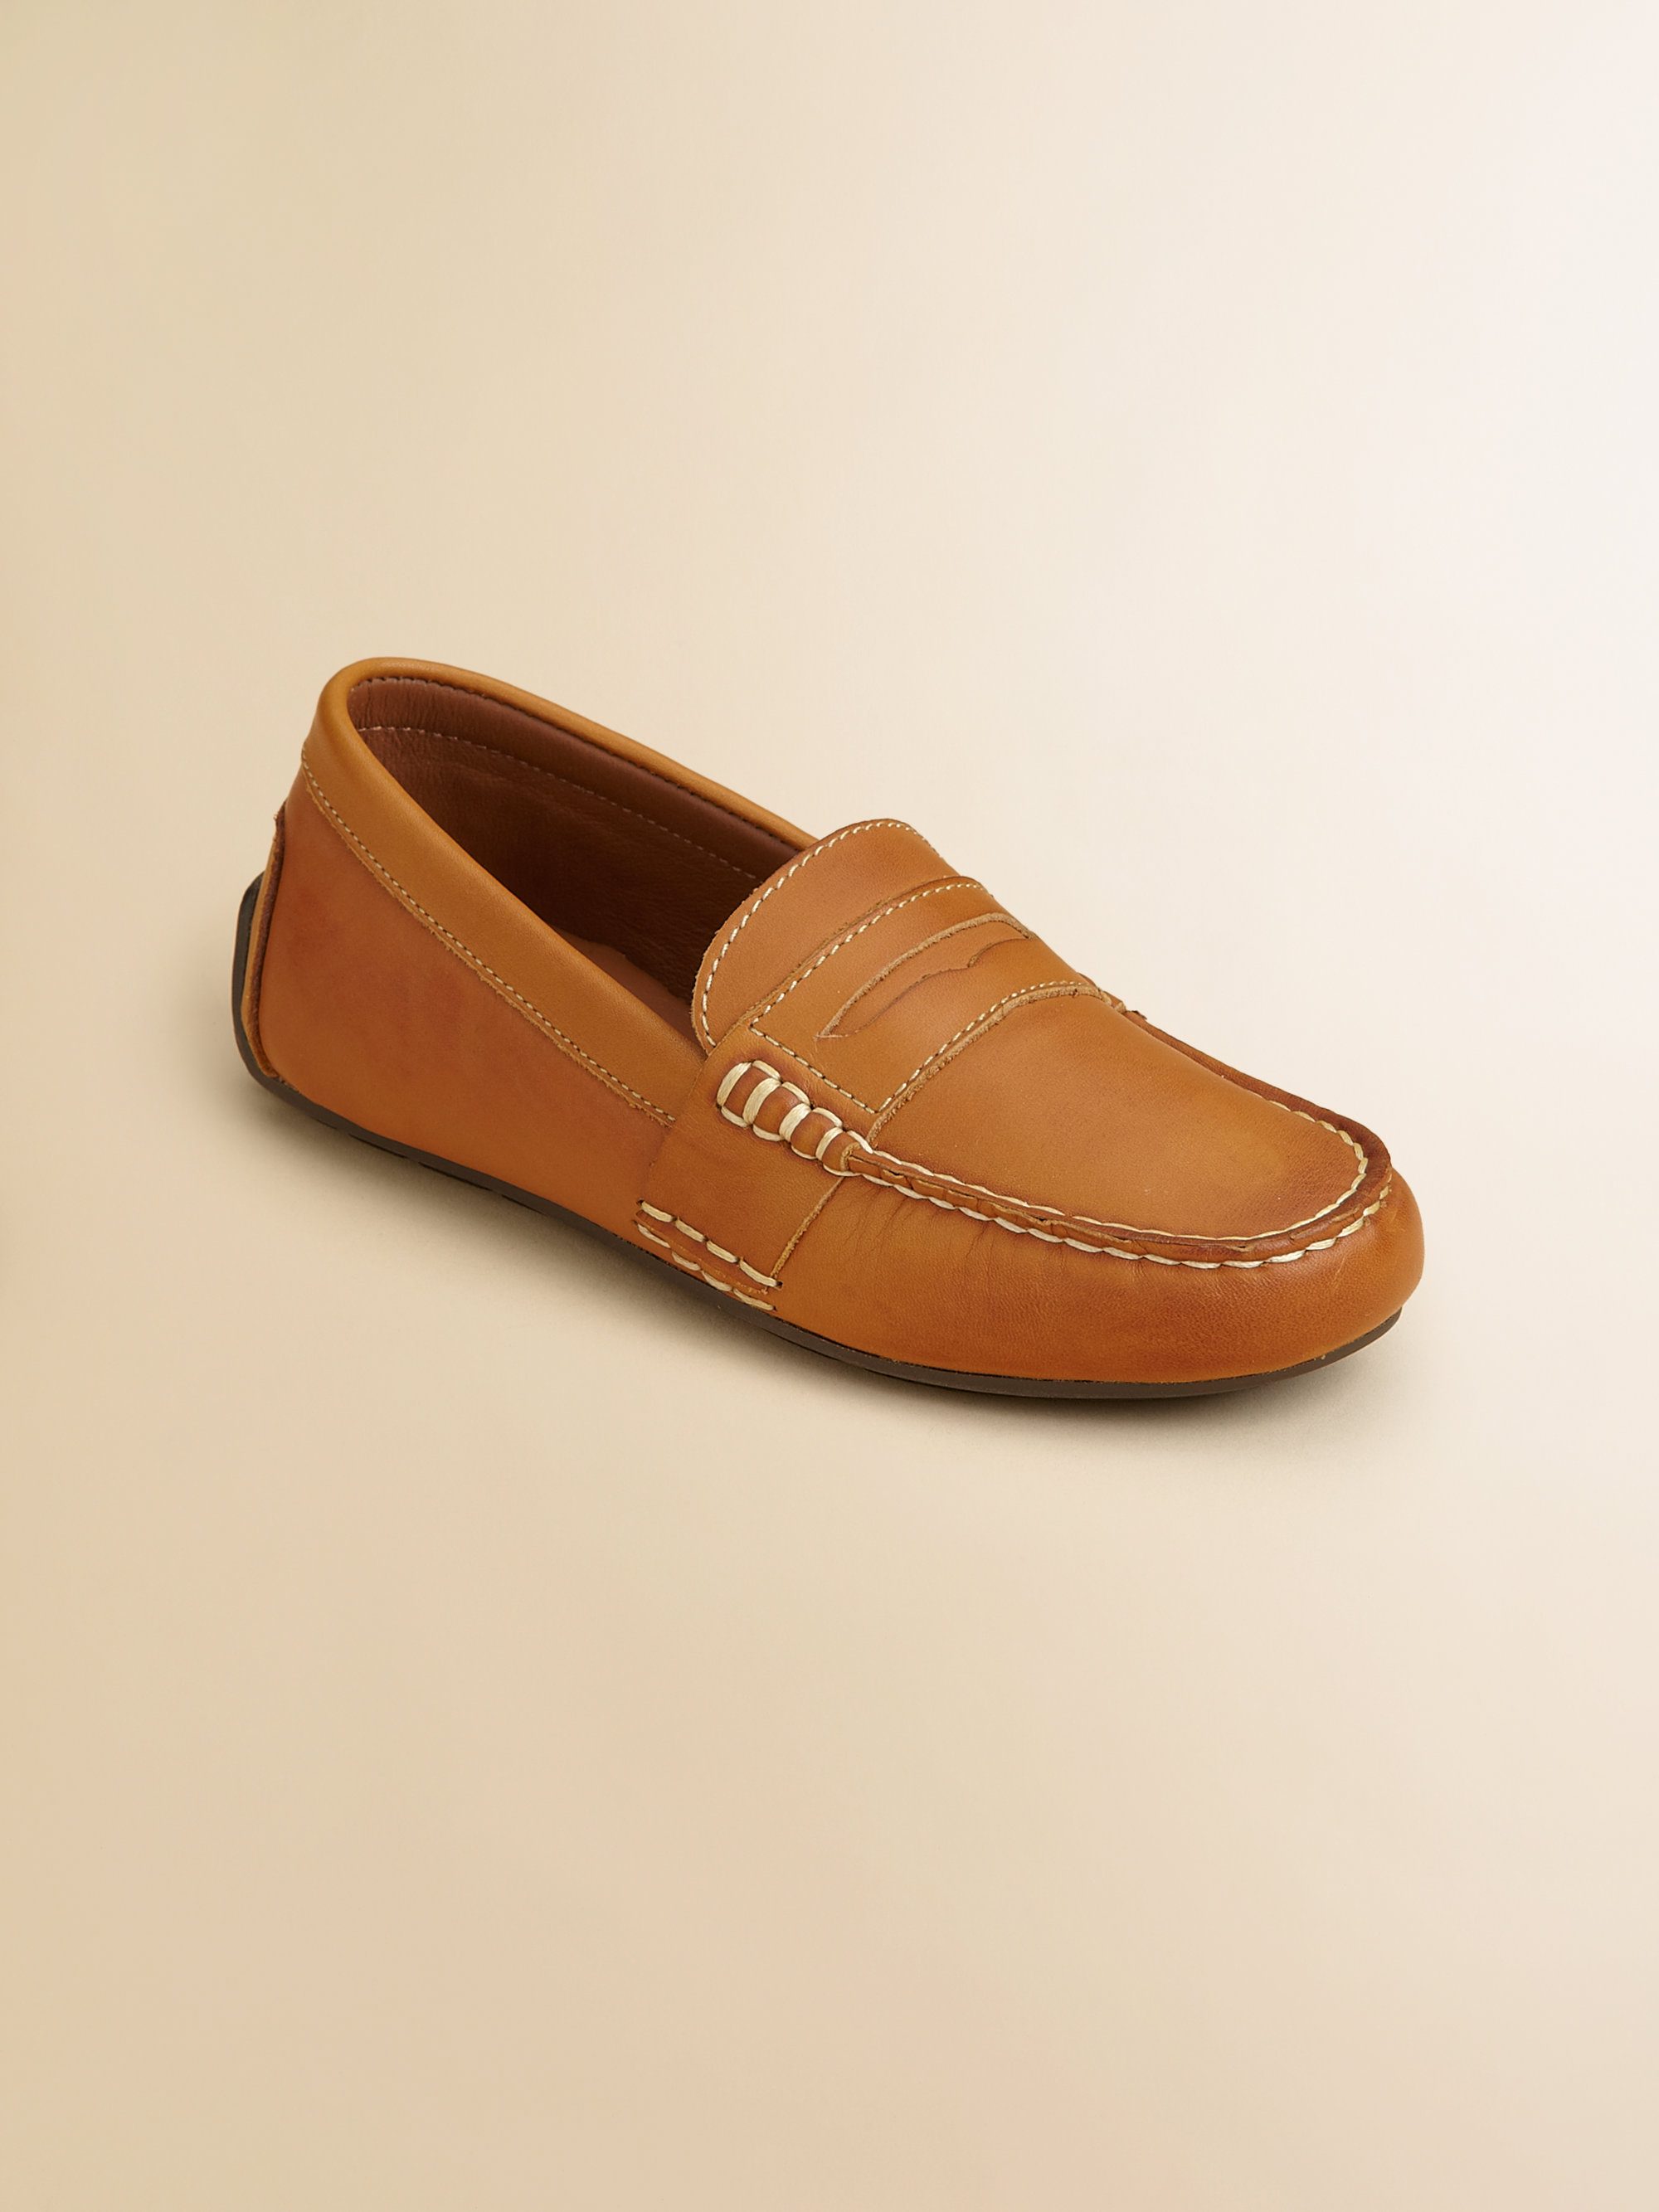 M S Tan Shoes